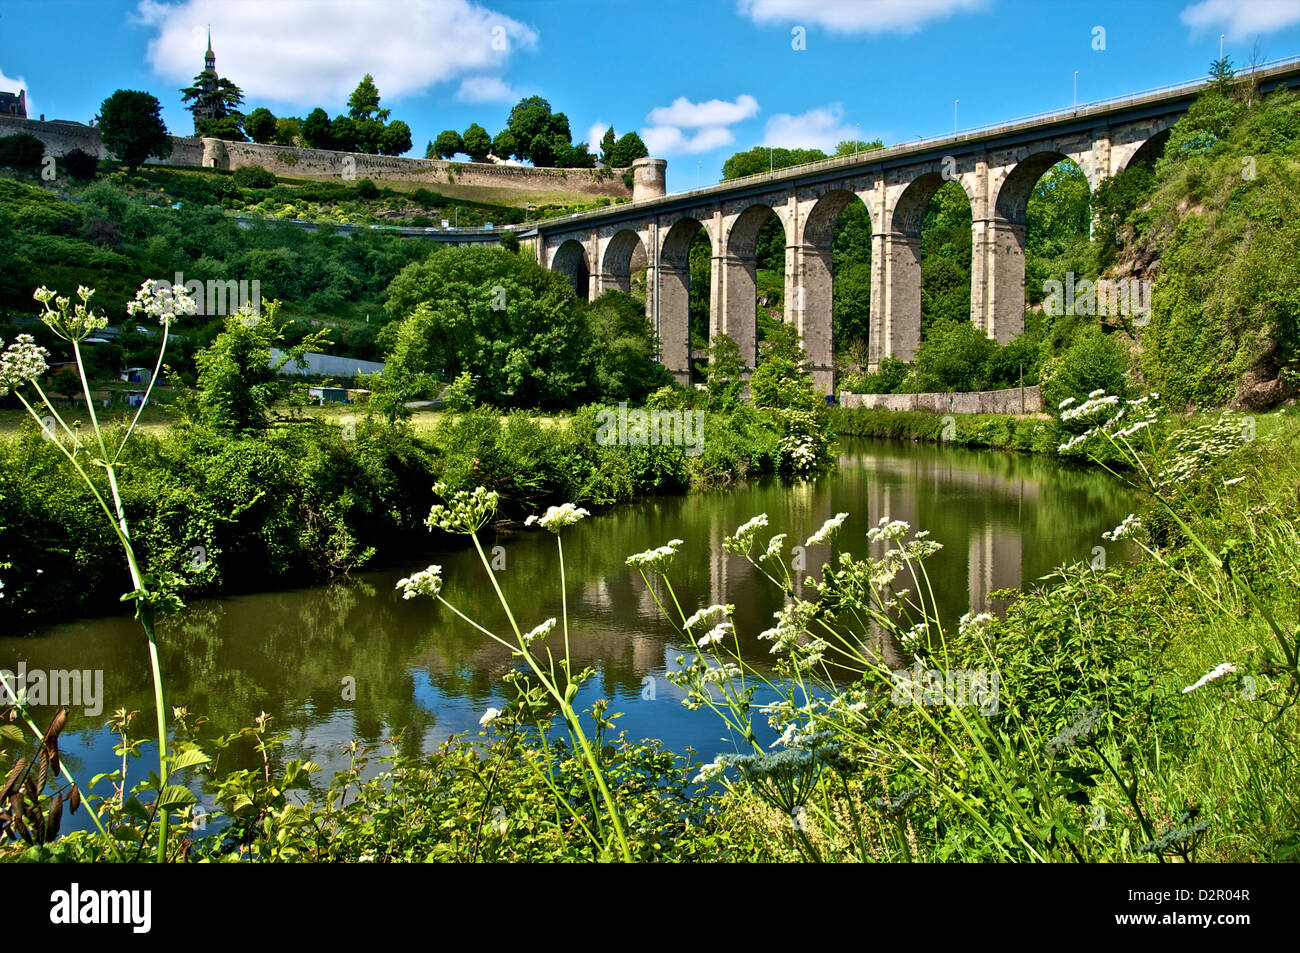 River Rance banks, with viaduct and Castle walls, Dinan, Brittany, France, Europe Stock Photo